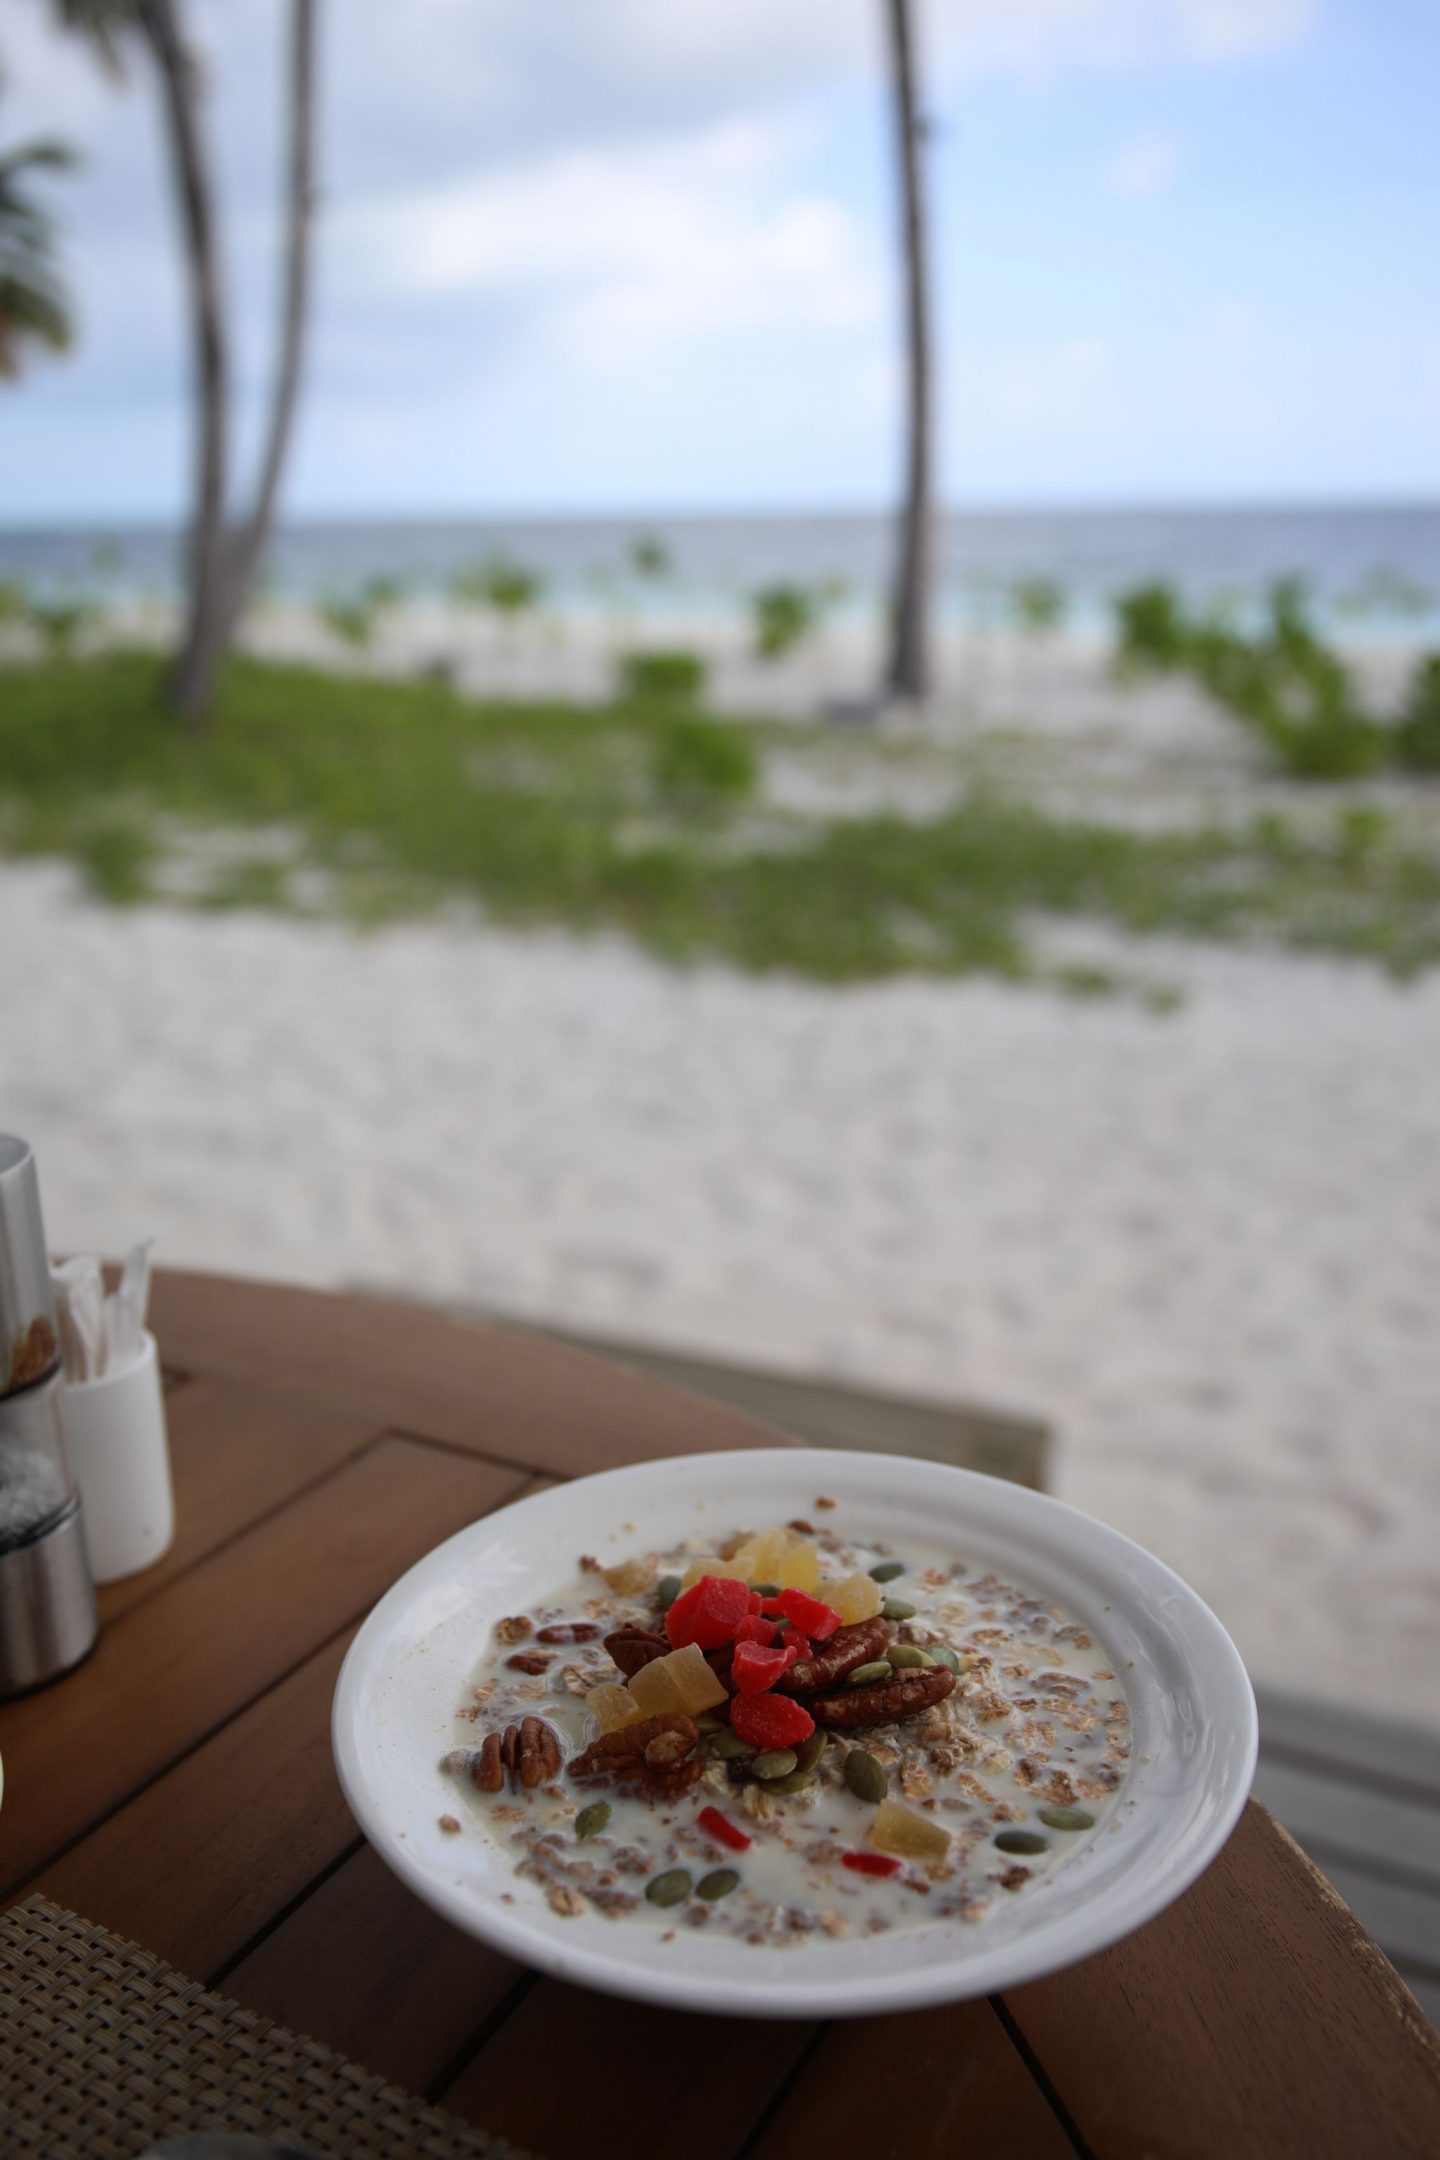 Food at the restaurant, Reethi Faru Resort, Raa Atoll, The Maldives, Katie KALANCHOE, Katie Heath